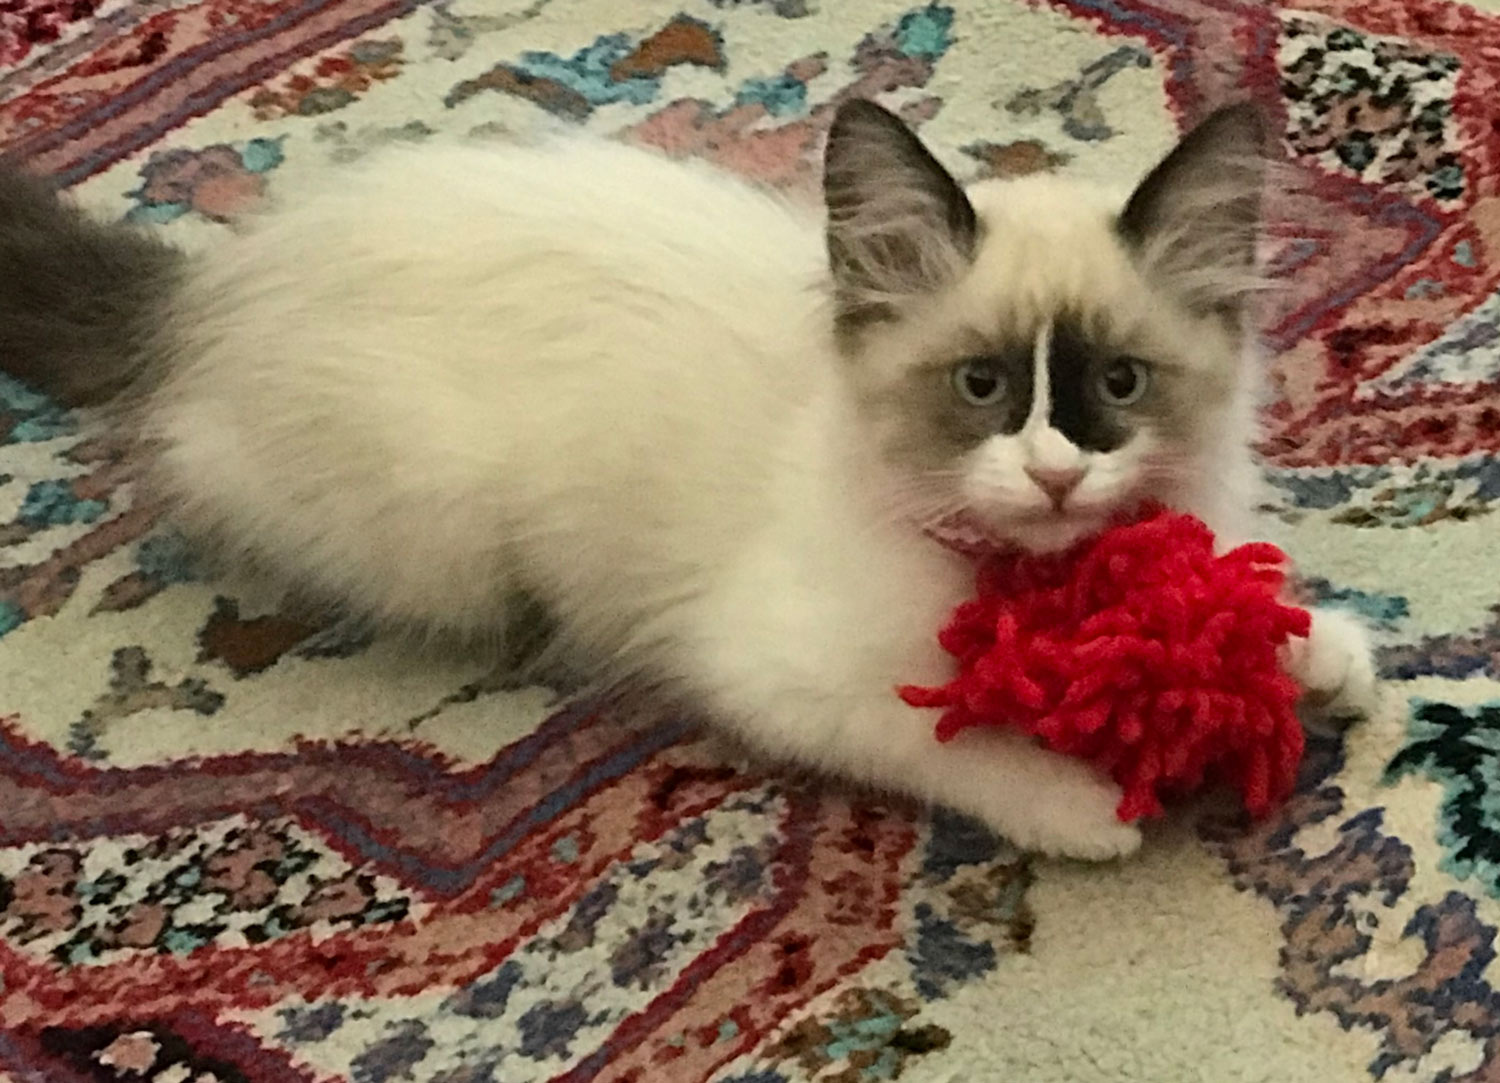 """Trina S. shared a picture of her kitten """"Smudgie"""", adopted from Animal Care Services in Long Beach, California. Smudgie loves her red yarn toy"""